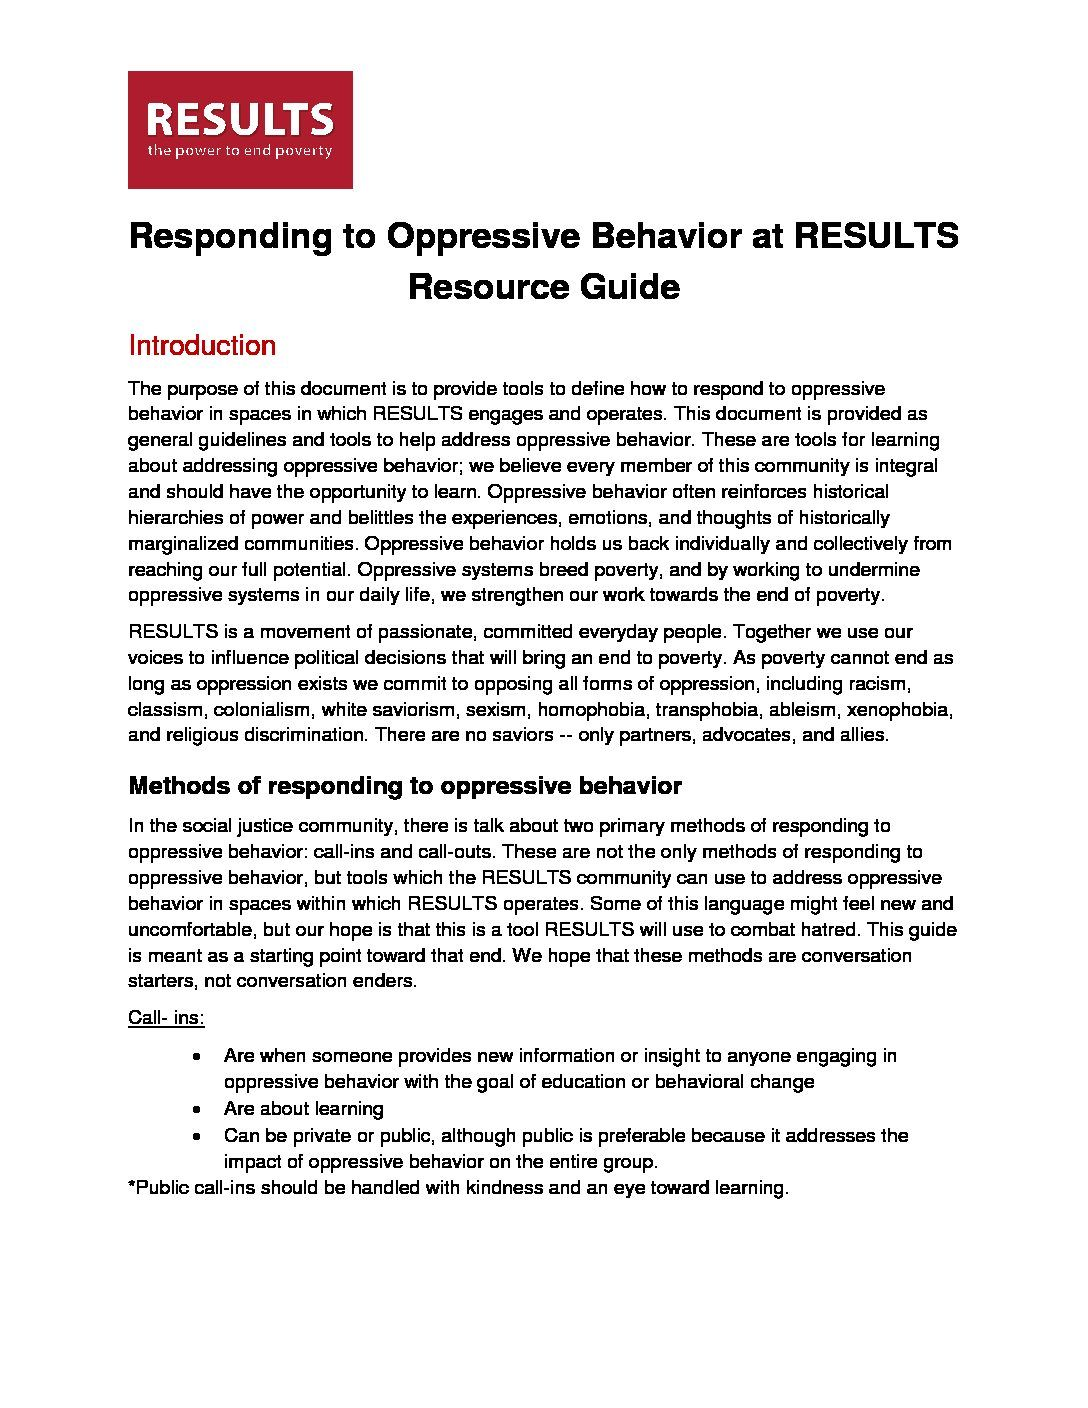 "Anti-Oppression ""Call-in Call-out"" Guide"